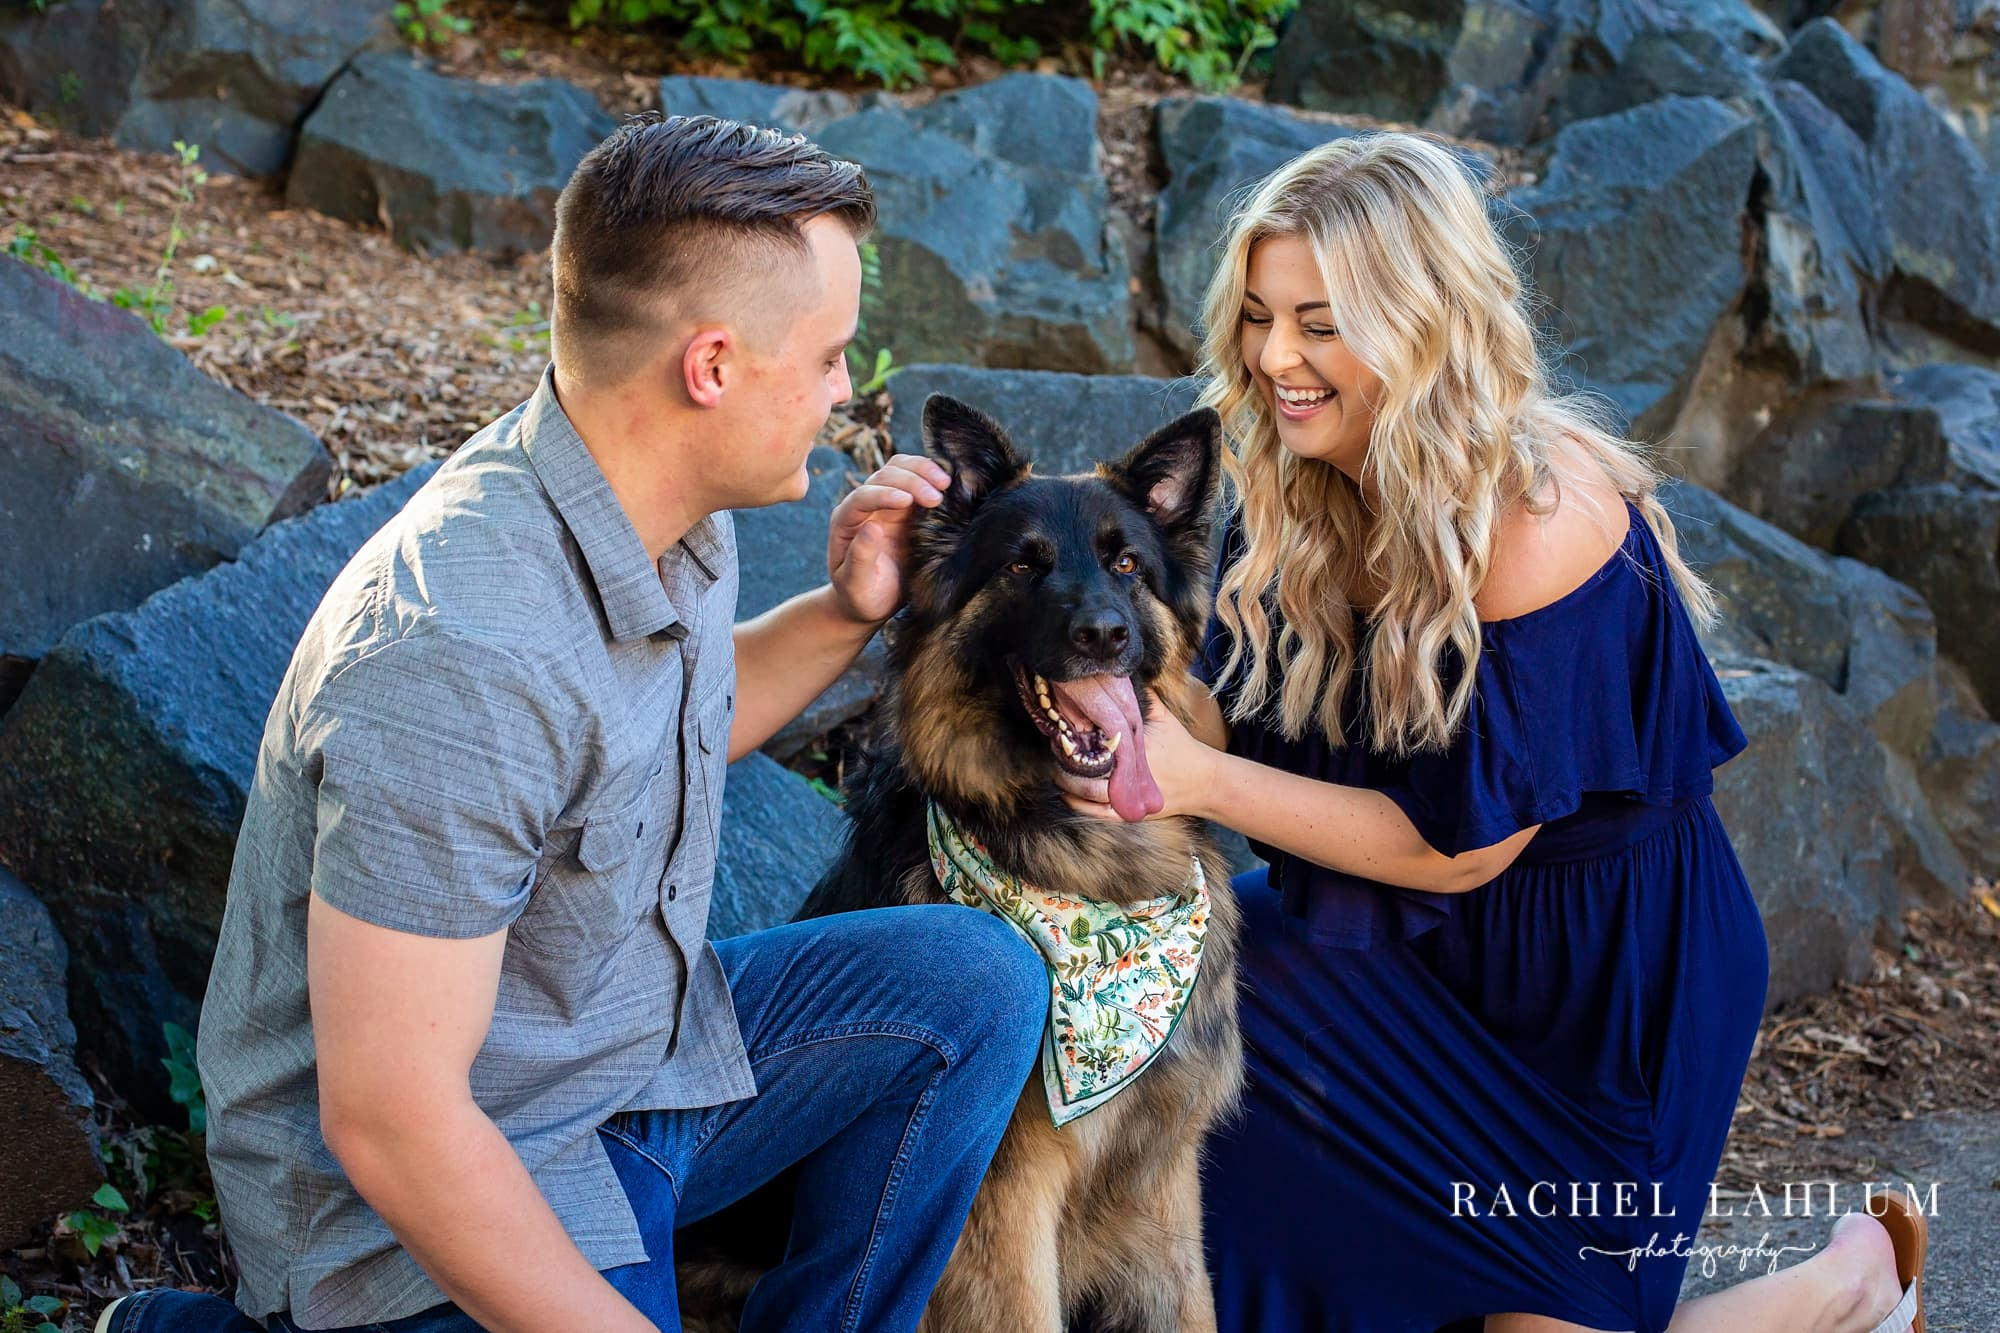 Engaged couple pet their dog during an engagement photo session at Como Park.